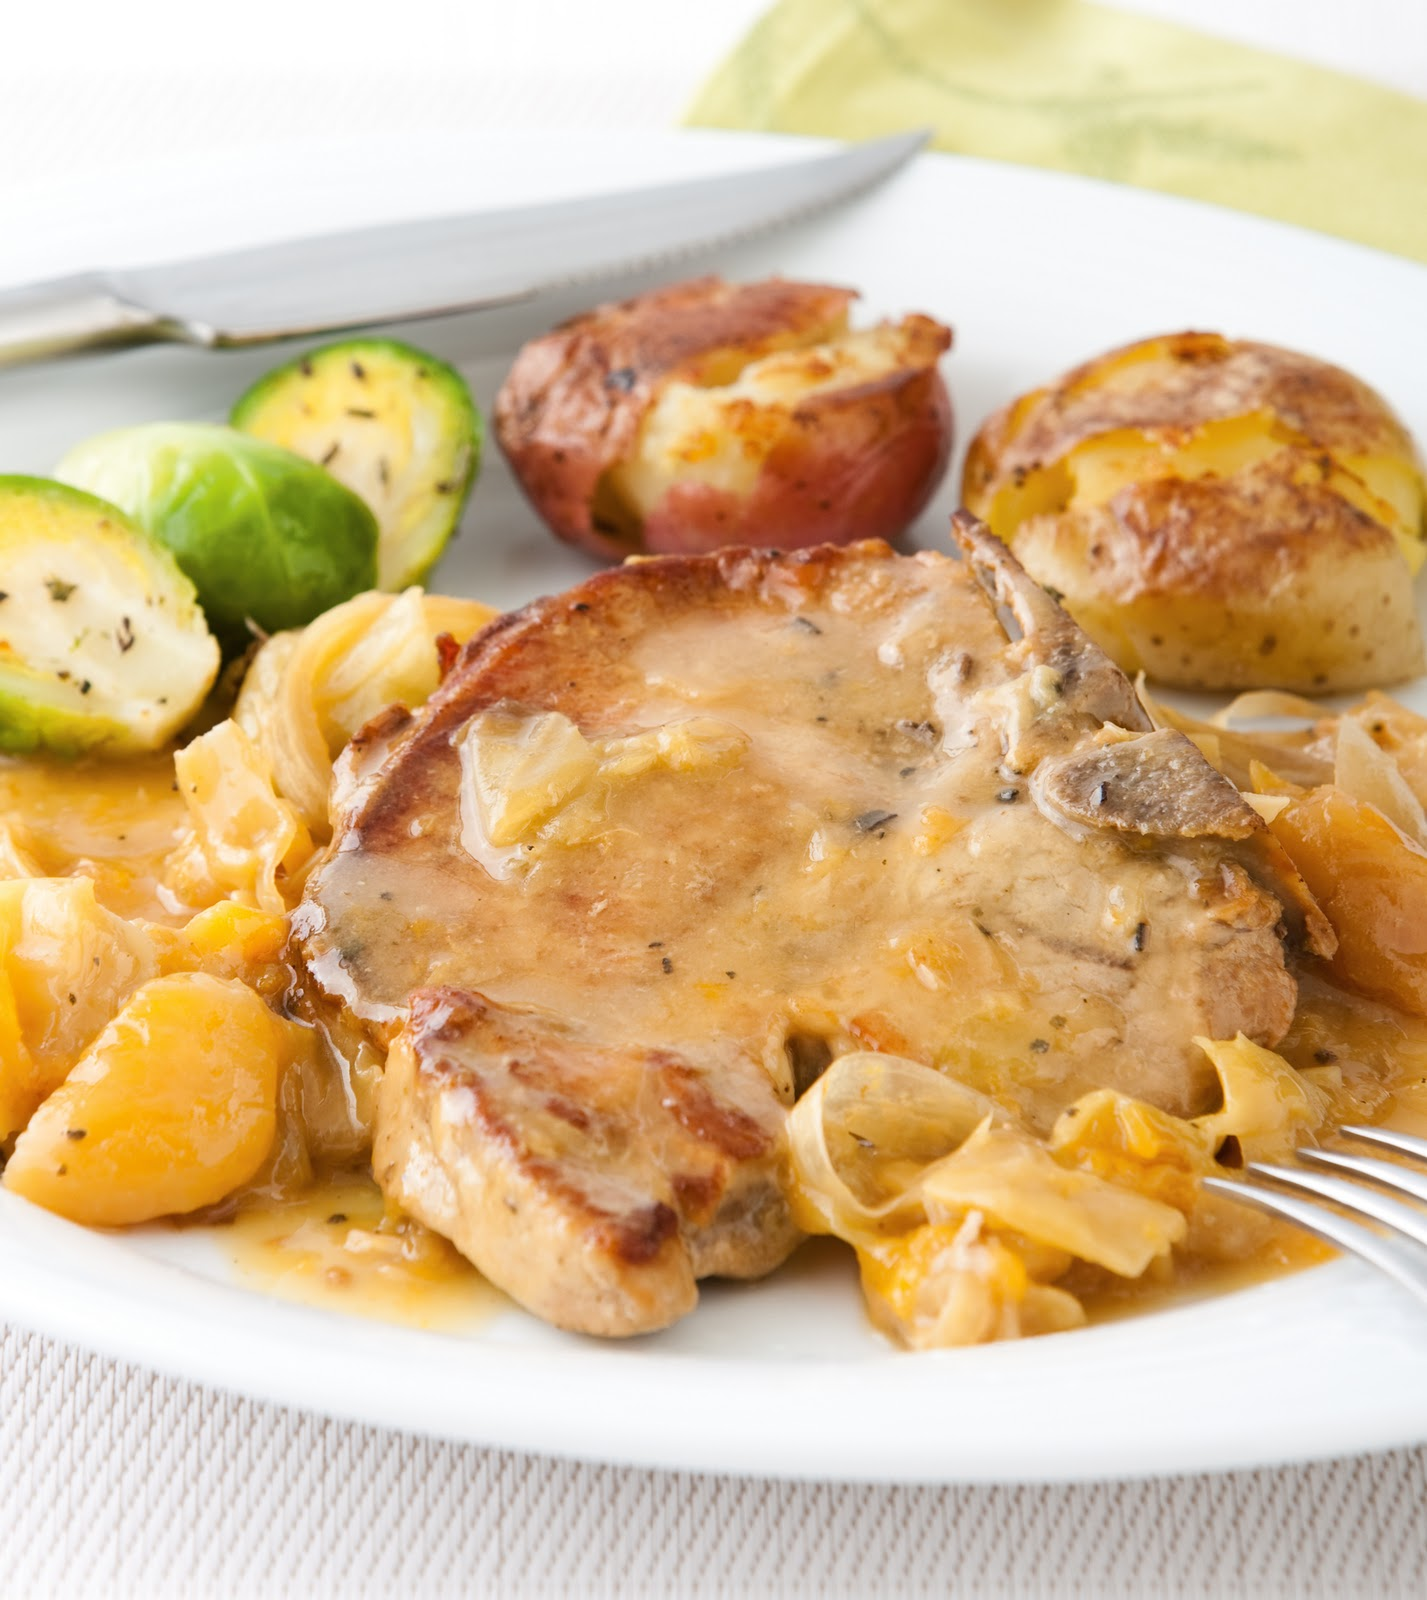 Dinner Two: Slow Cooker Pork Chops with Apricots and Cabbage